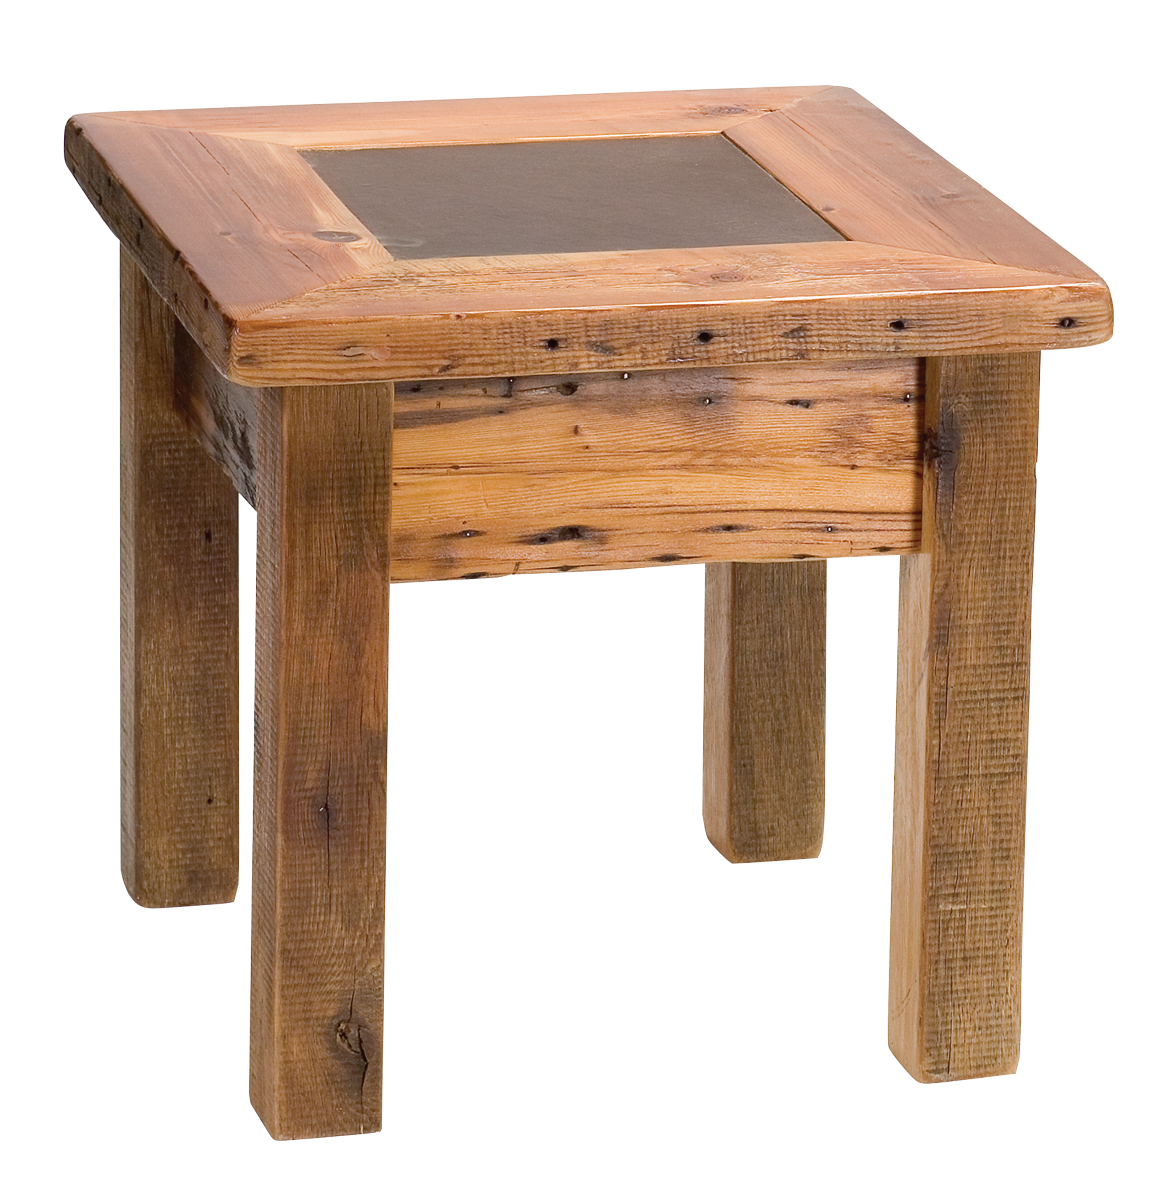 log stump end table probably super real rustic wood tables sierra furniture mall timber creek sierraendtable frosted glass mirrored nightstands small outside and chairs